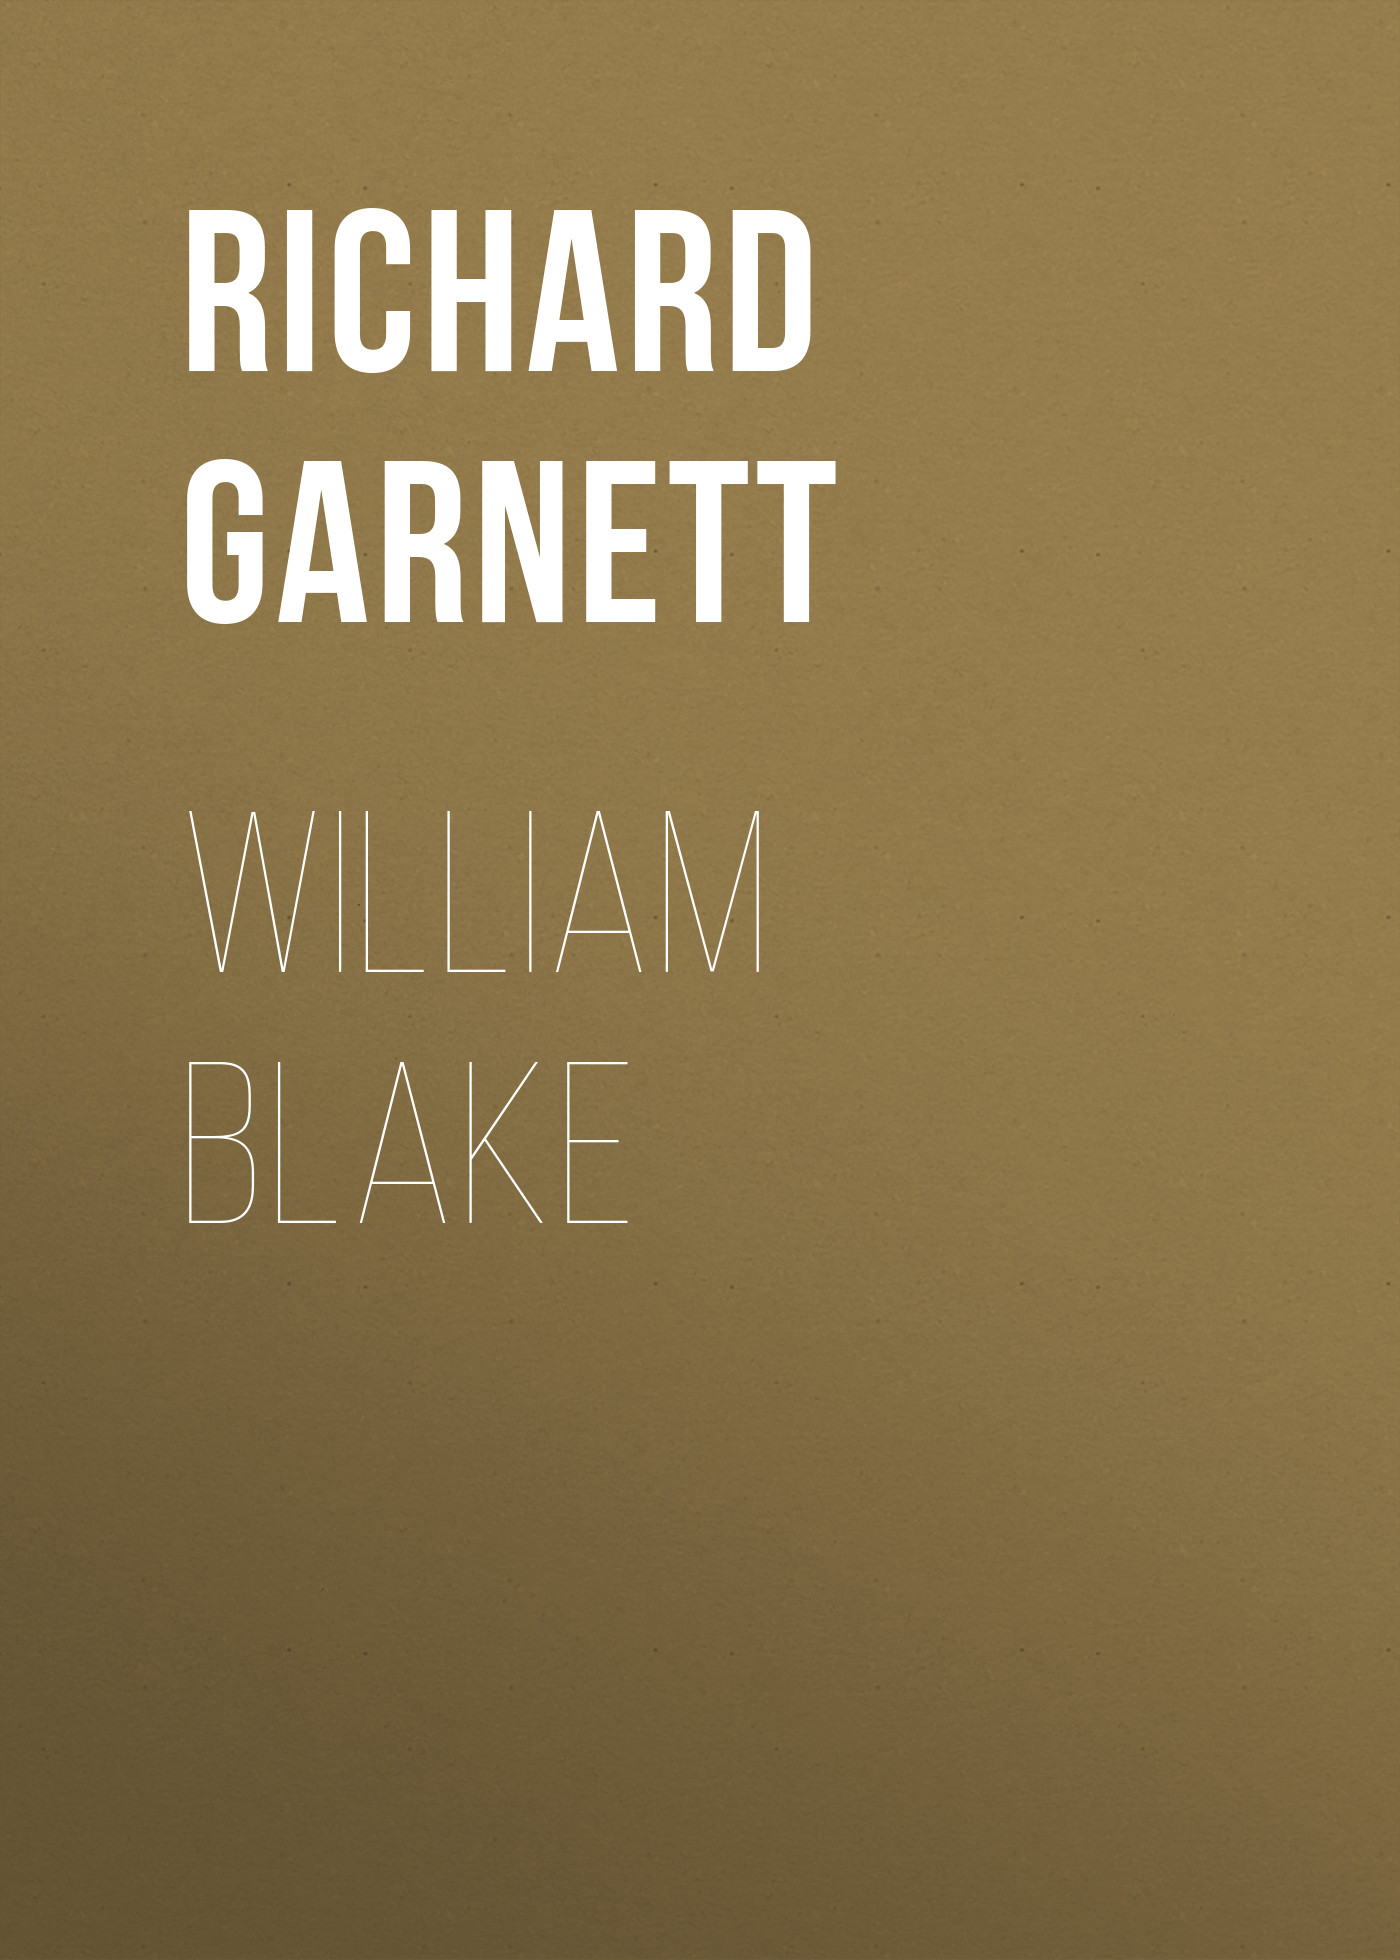 Richard Garnett William Blake все цены